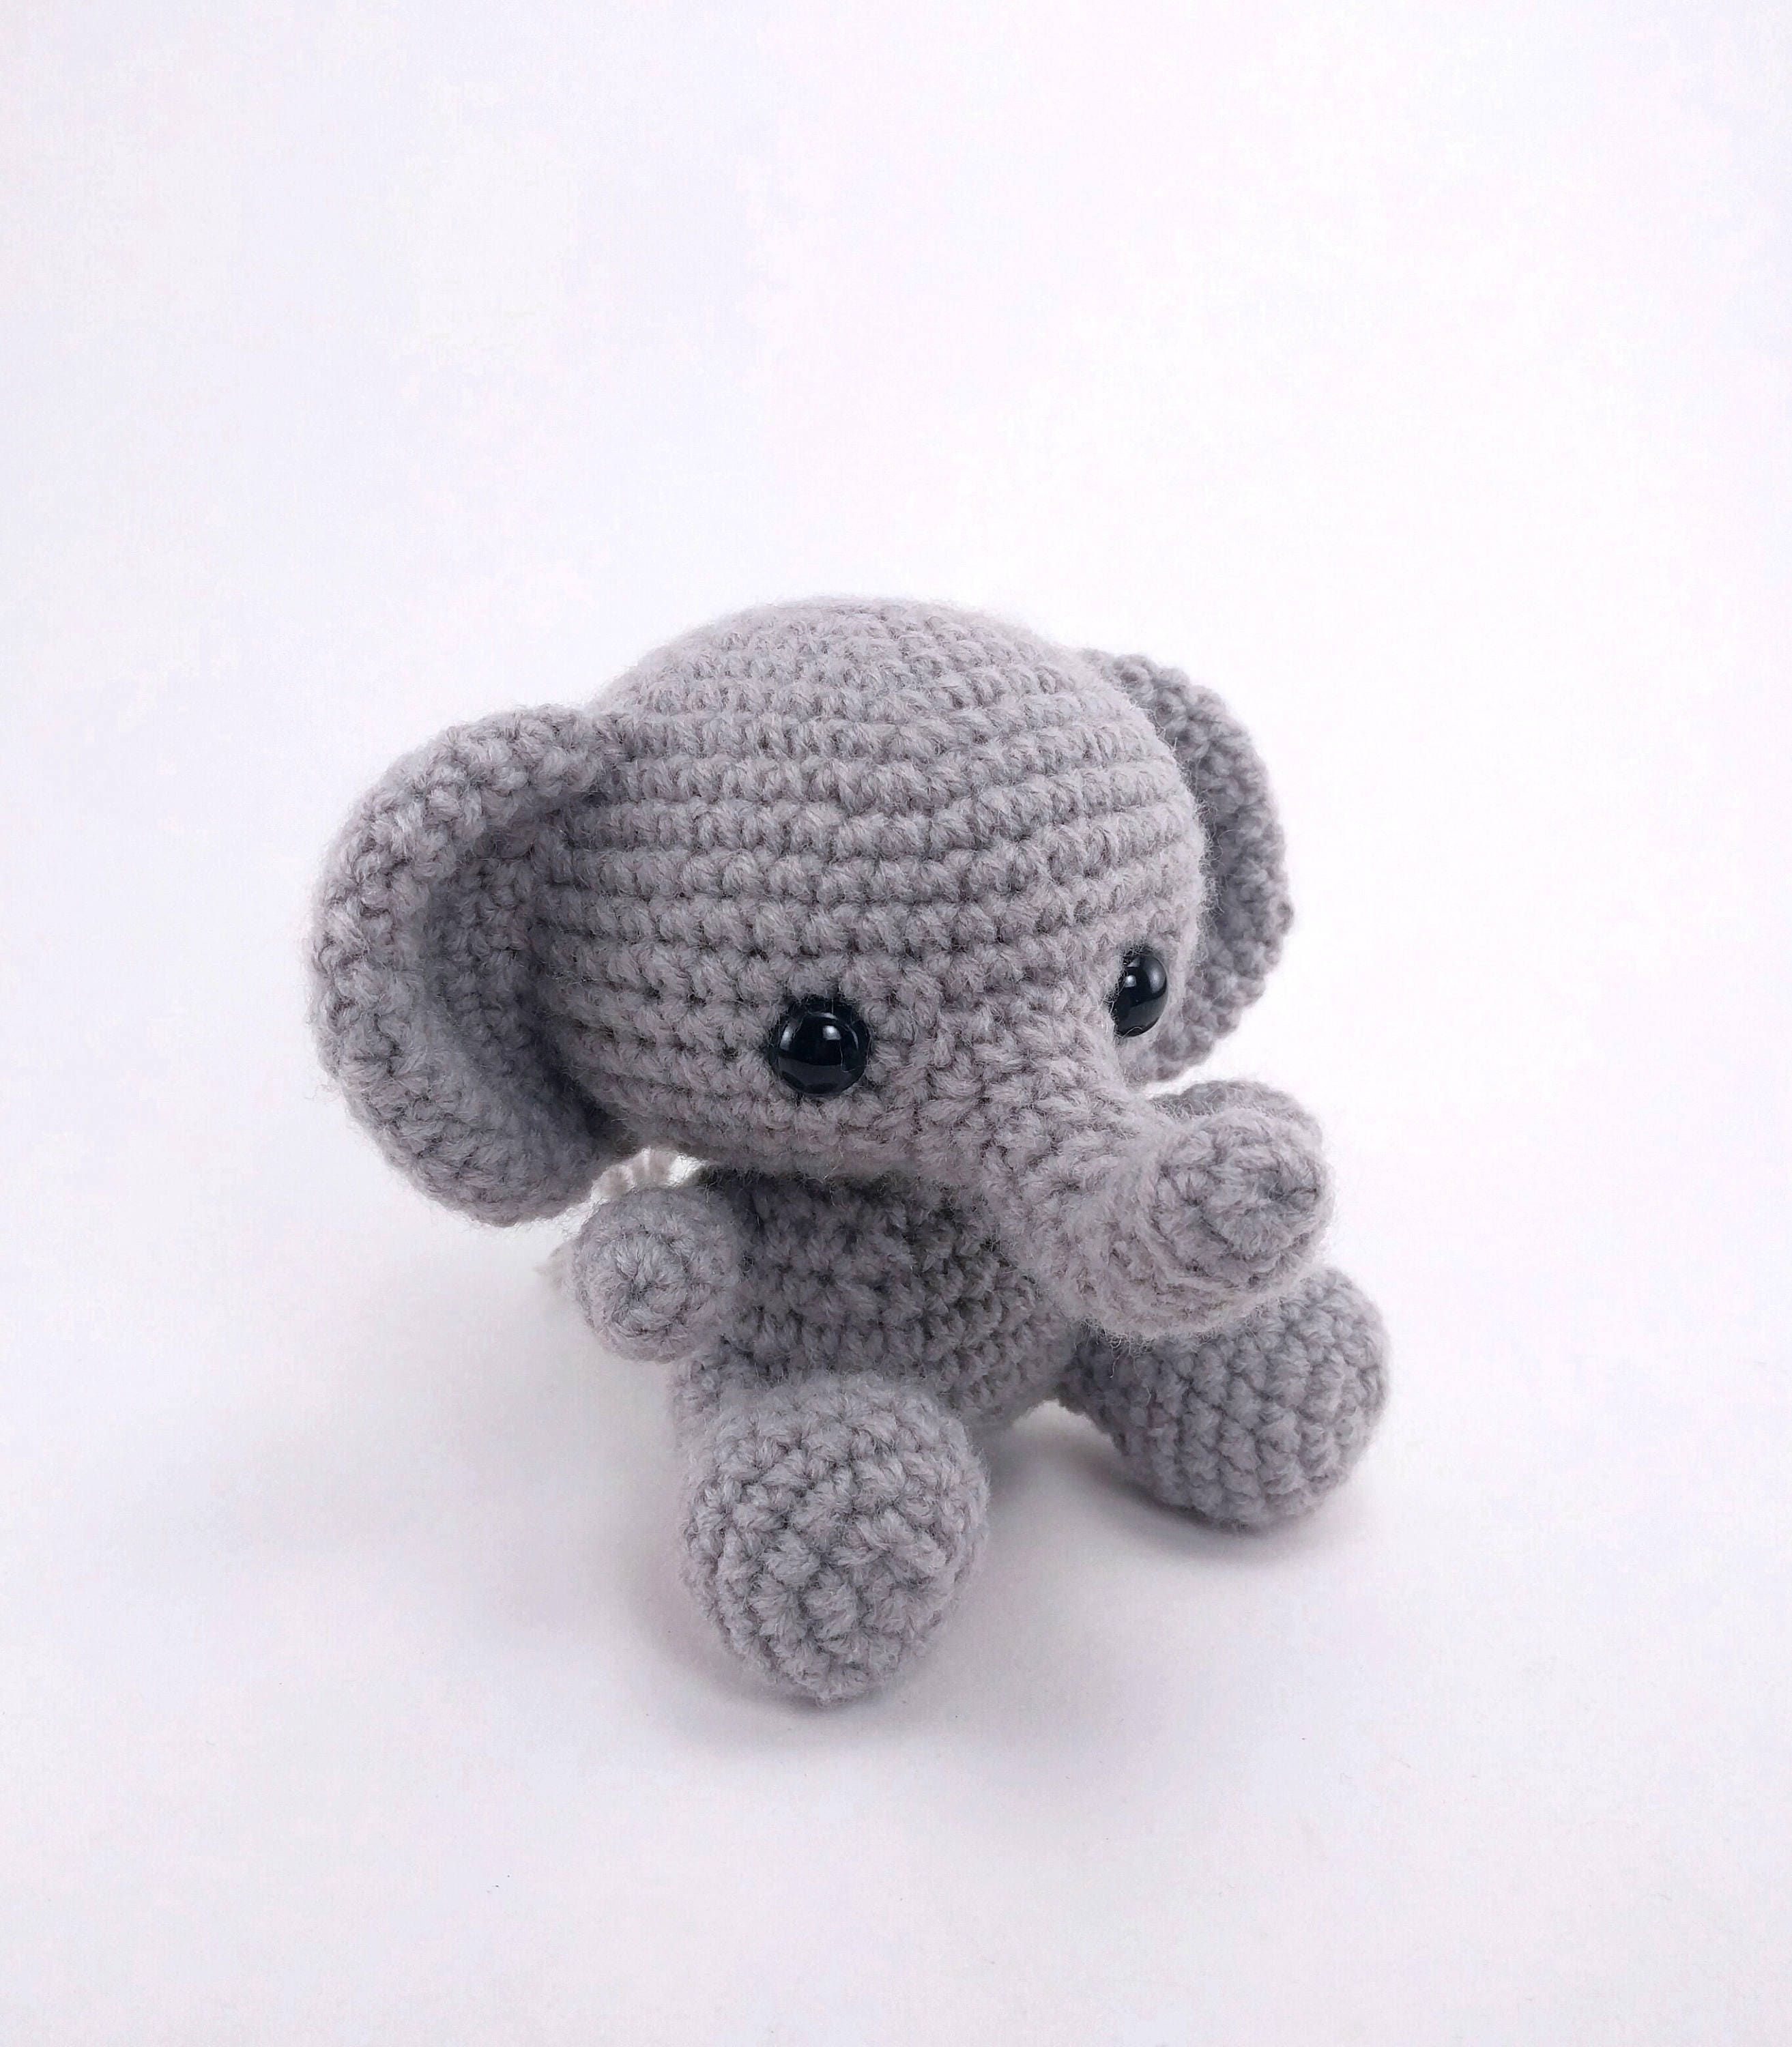 pattern crochet elephant pattern amigurumi elephant. Black Bedroom Furniture Sets. Home Design Ideas